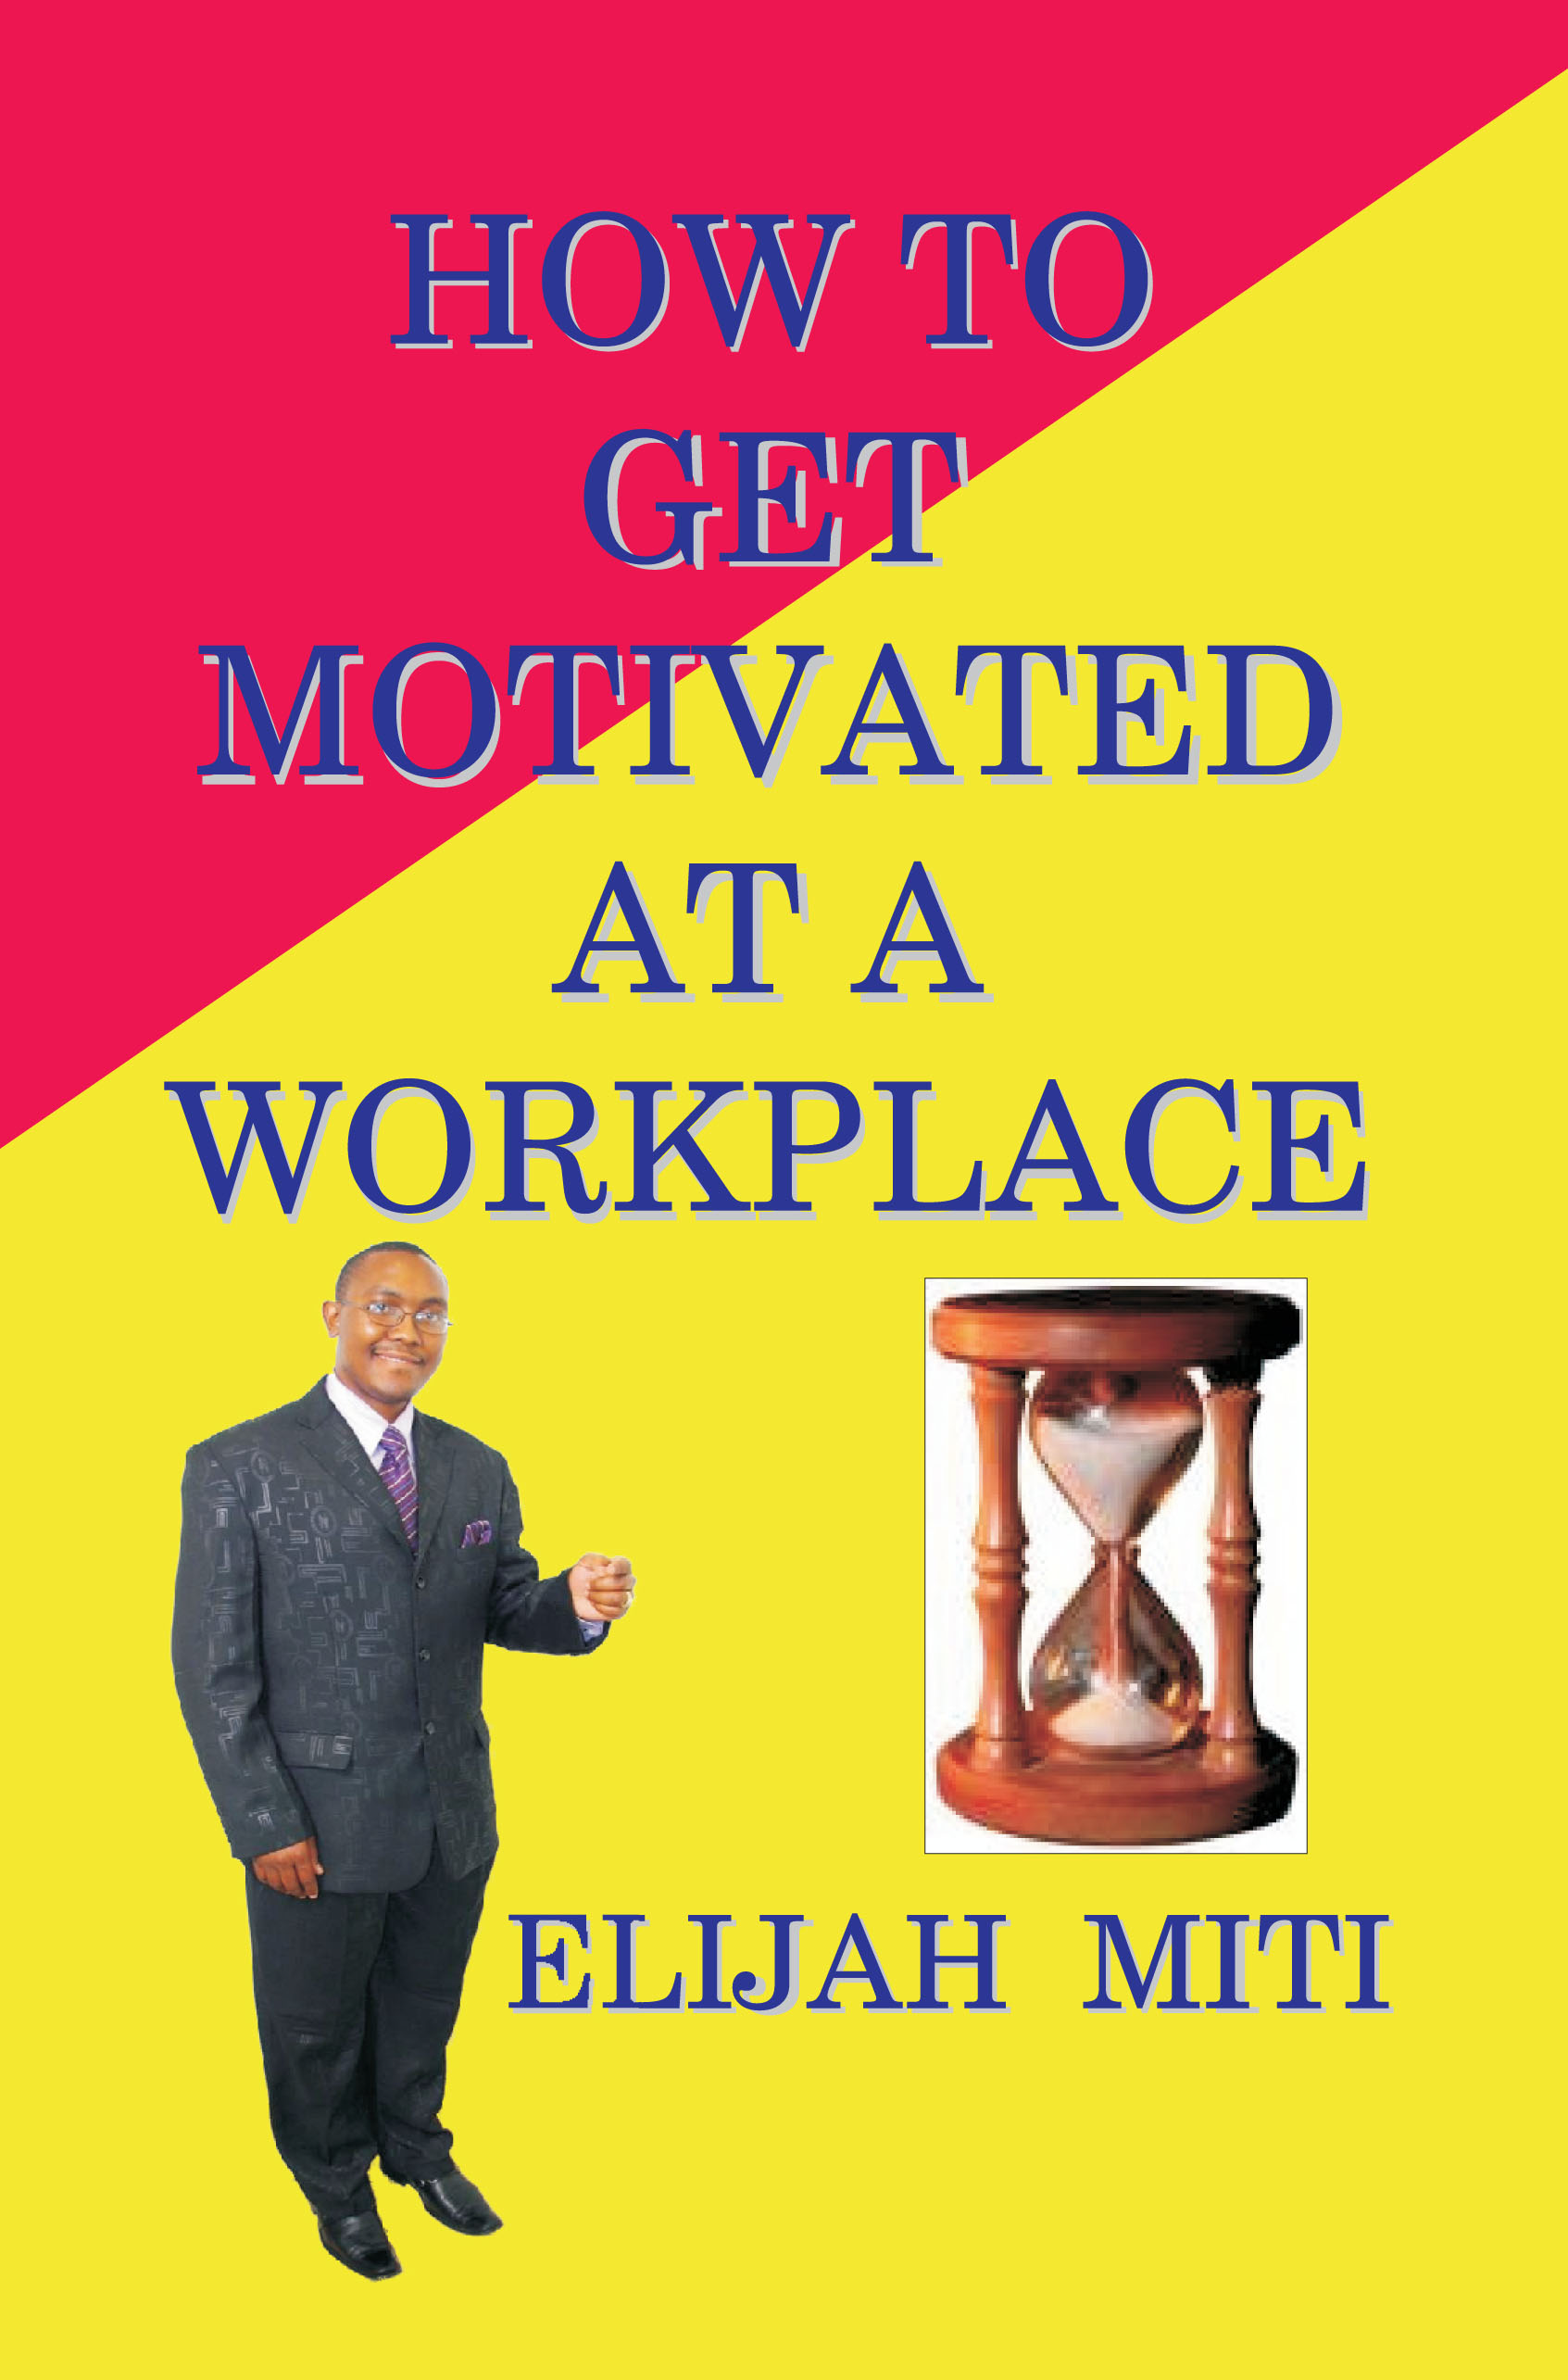 HOW TO GET MOTIVATED AT A WORKPLACE